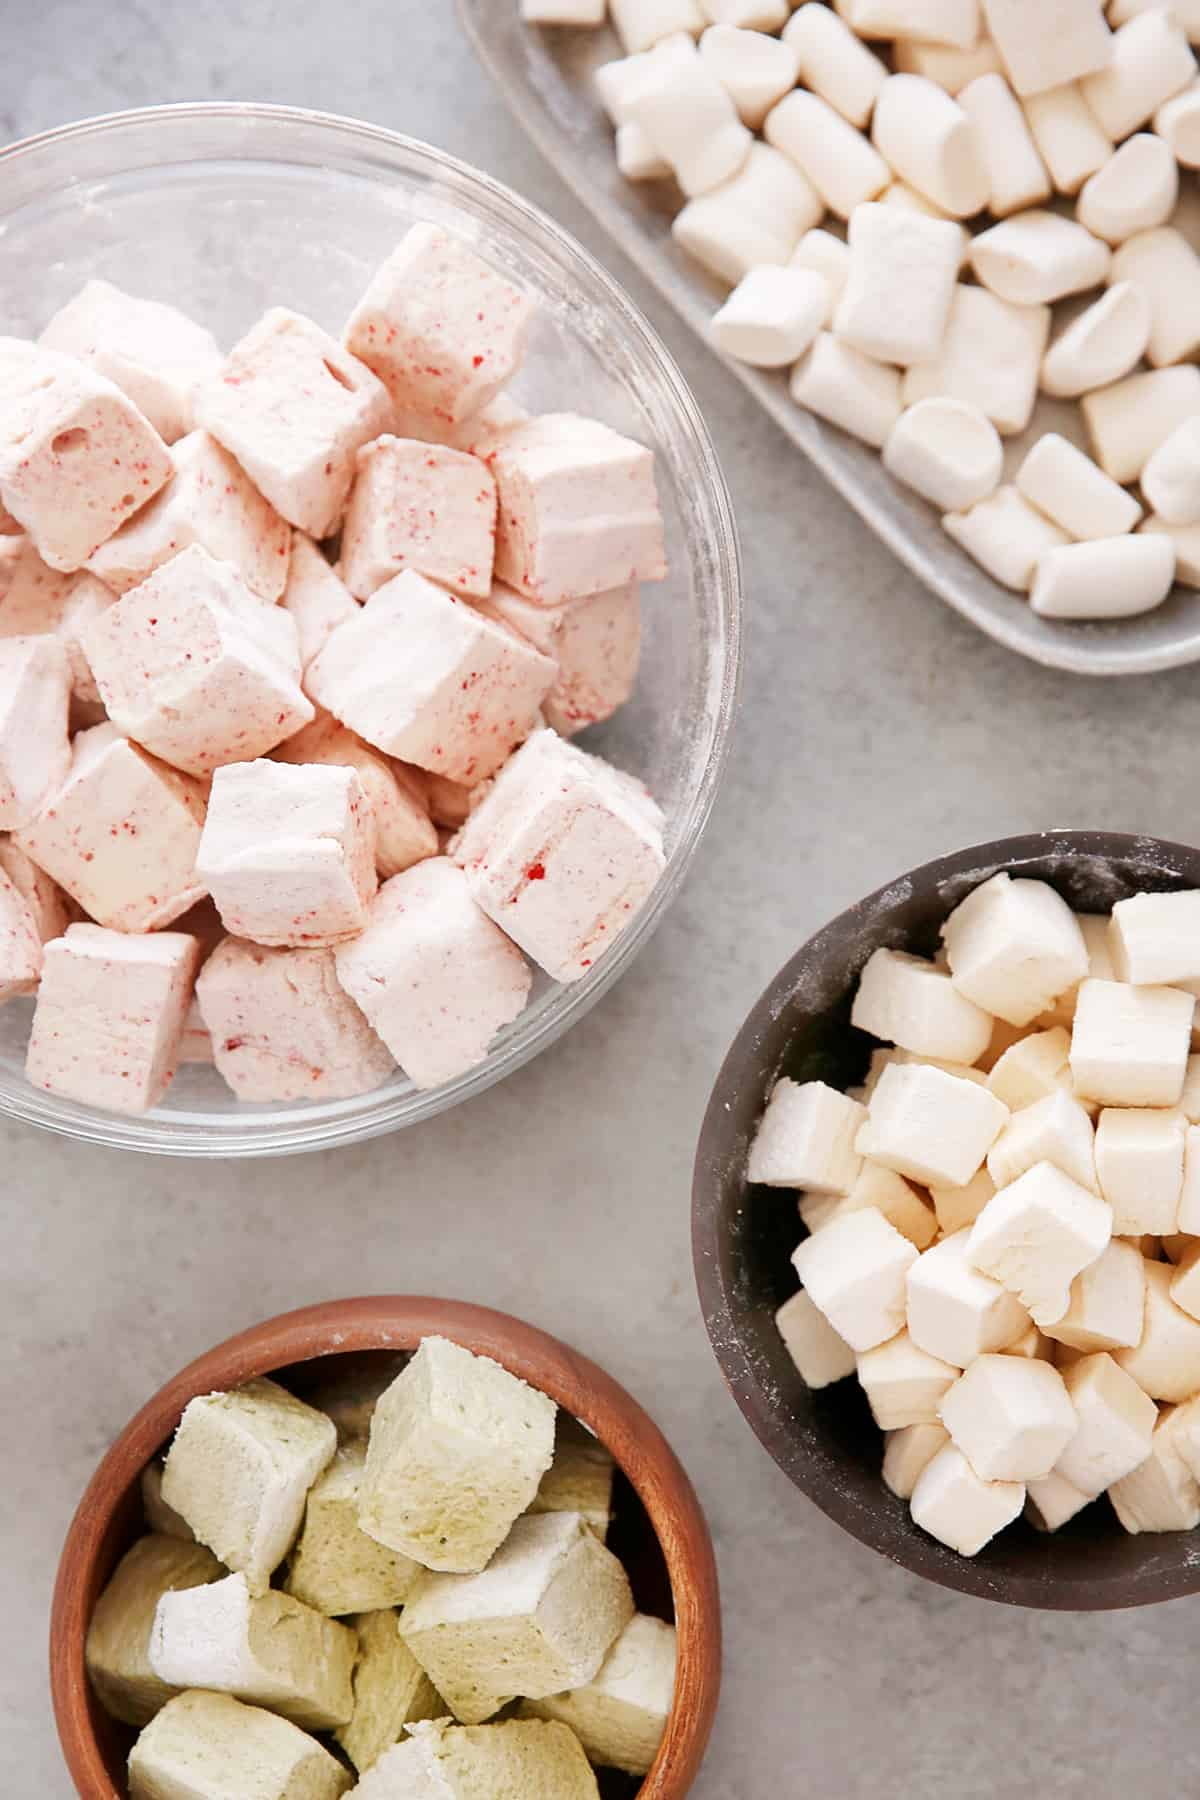 Different marshmallow flavors